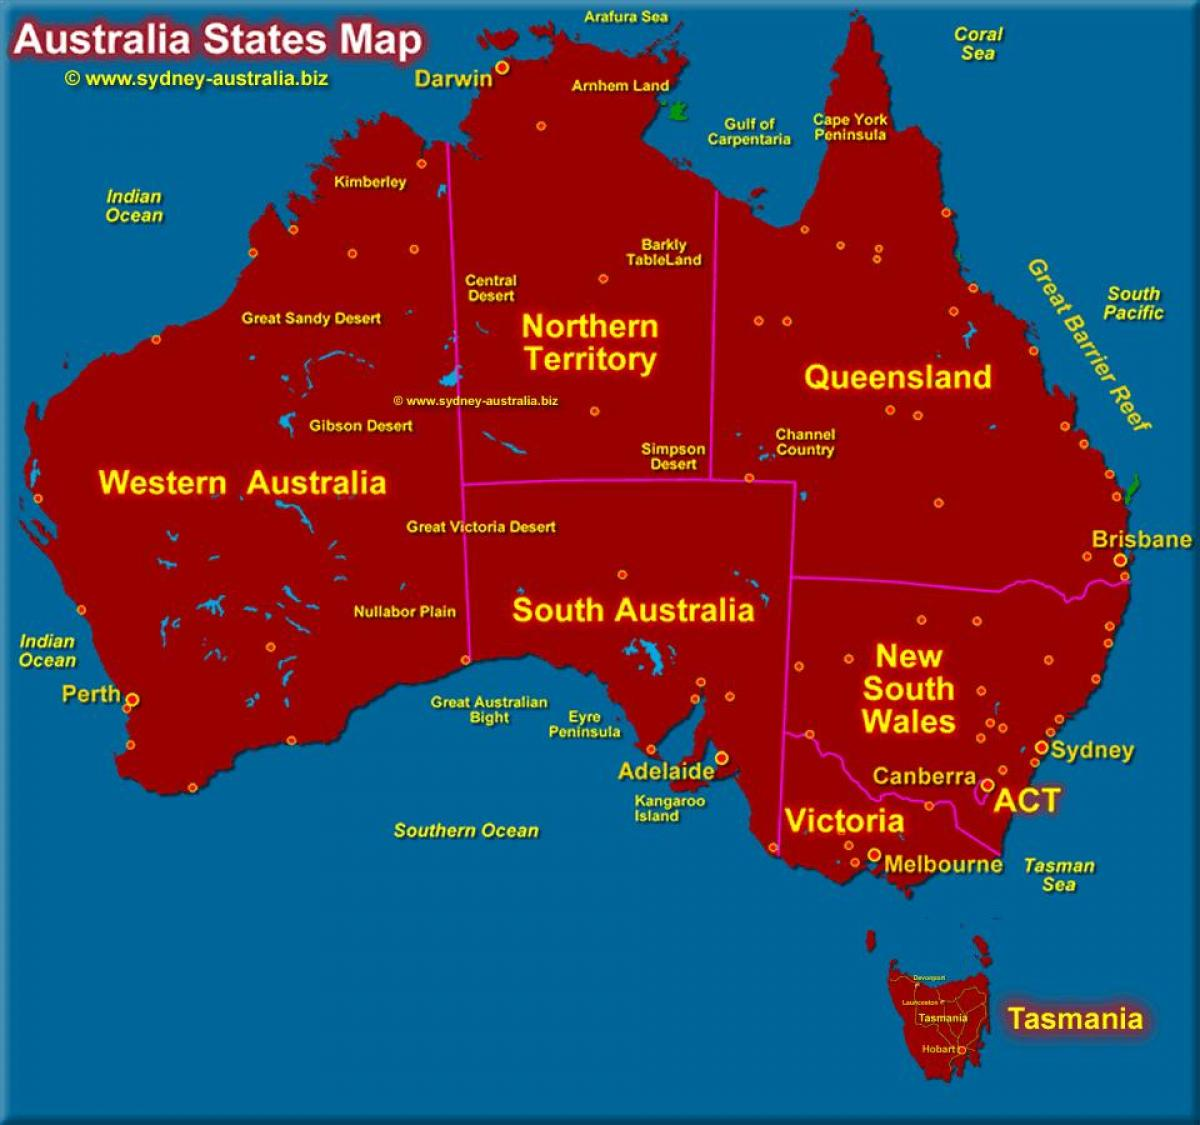 map of Australia showing states